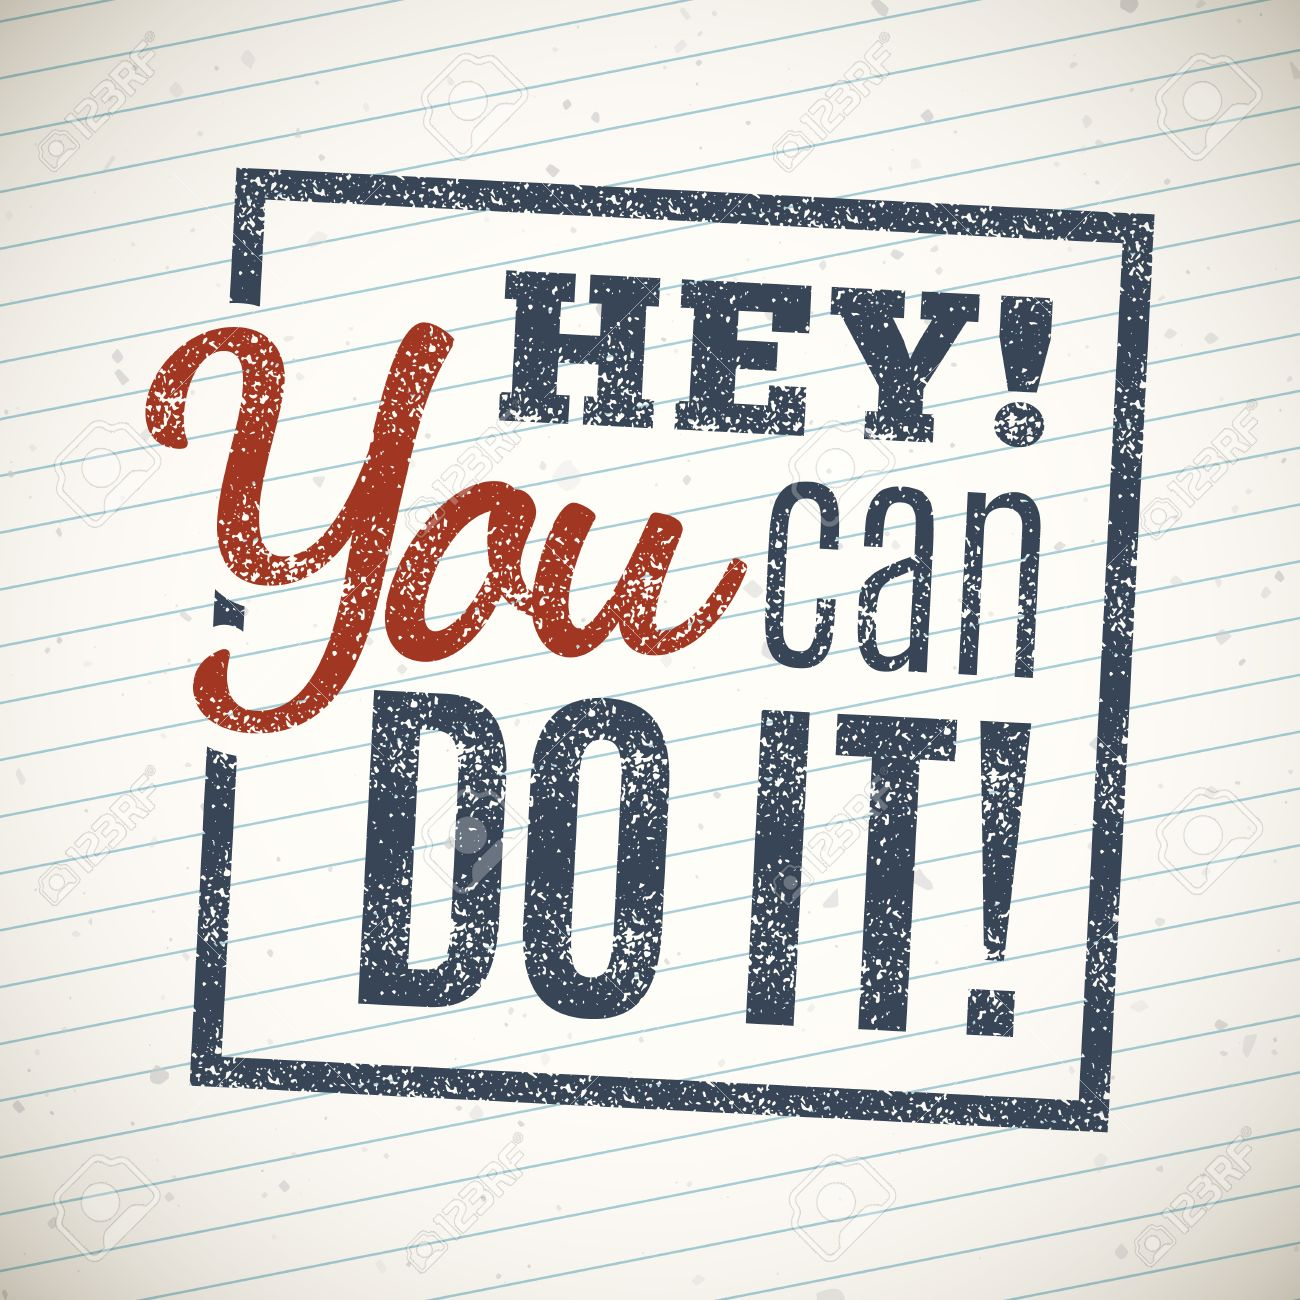 46527751-hey-you-can-do-it-motivational-lettering-quote